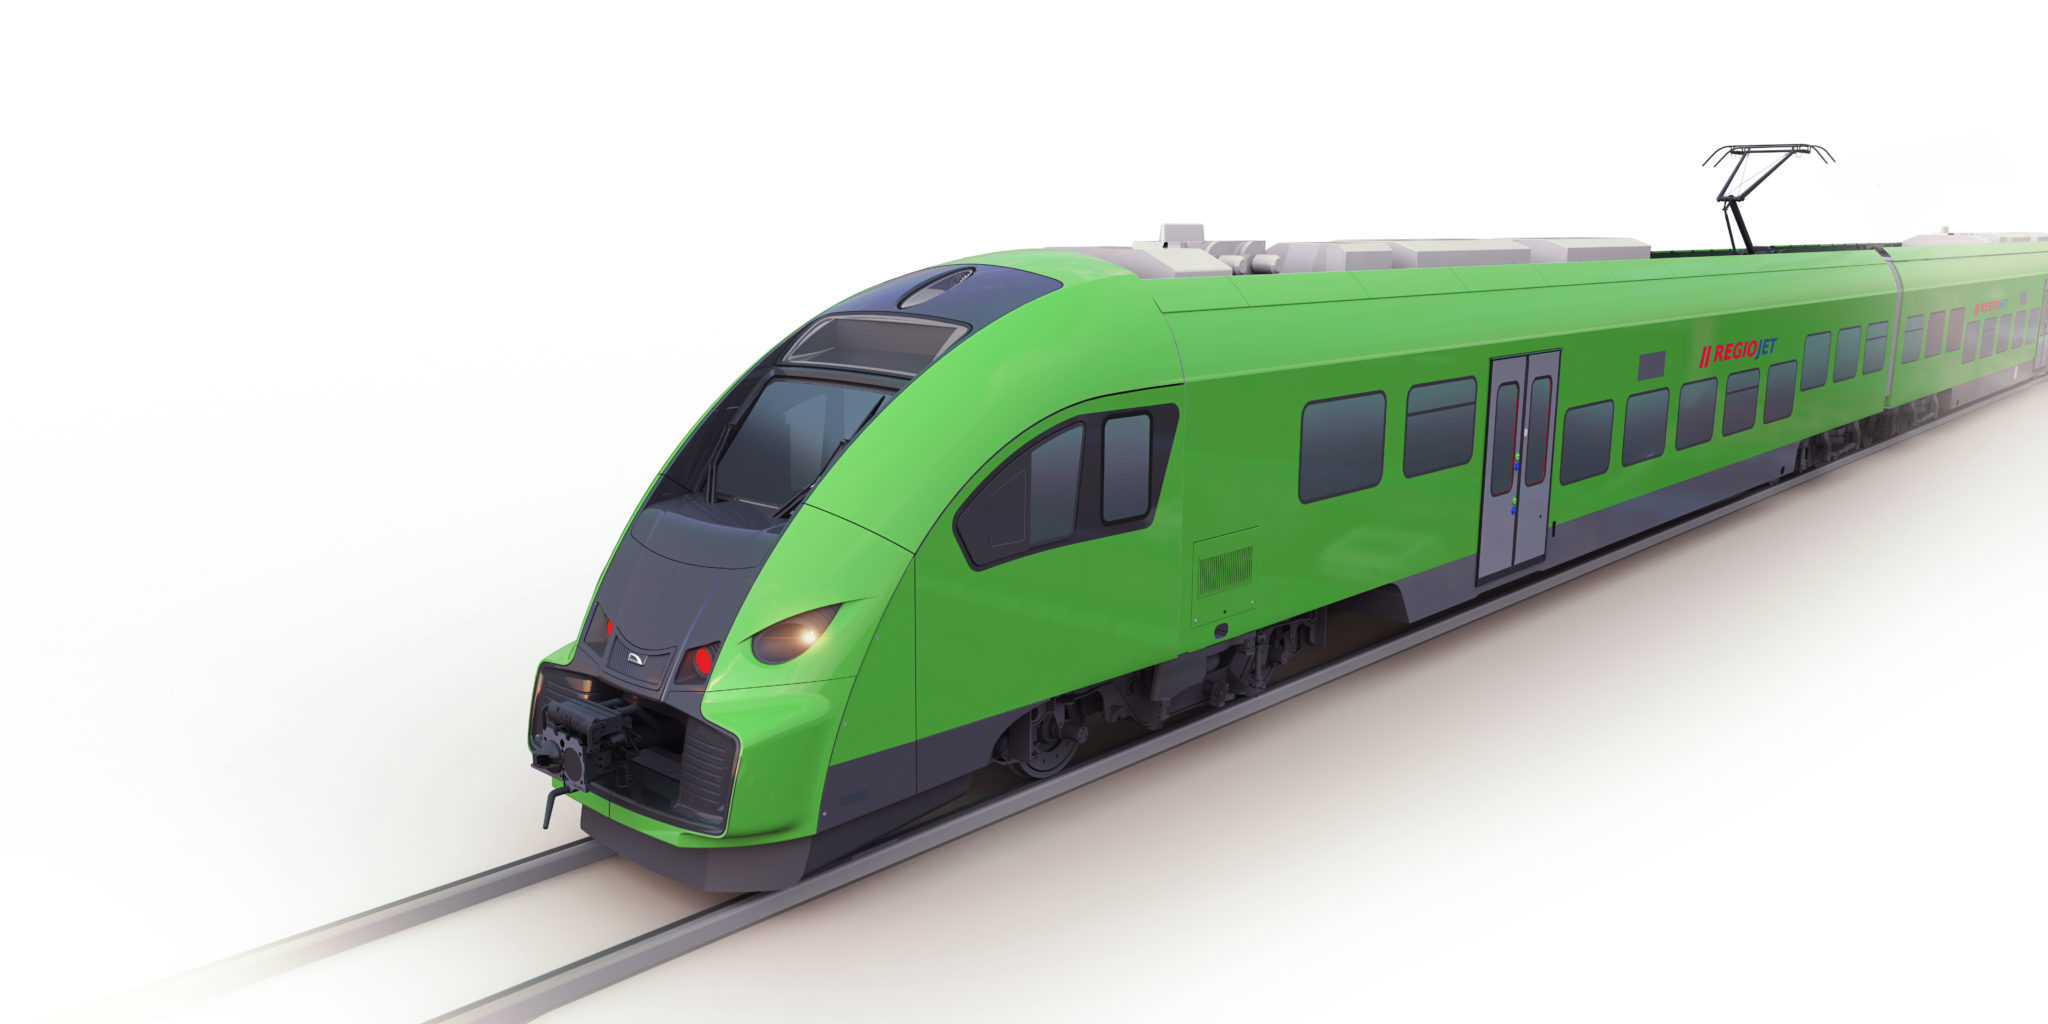 The PESA Elf EMU for RegioJet